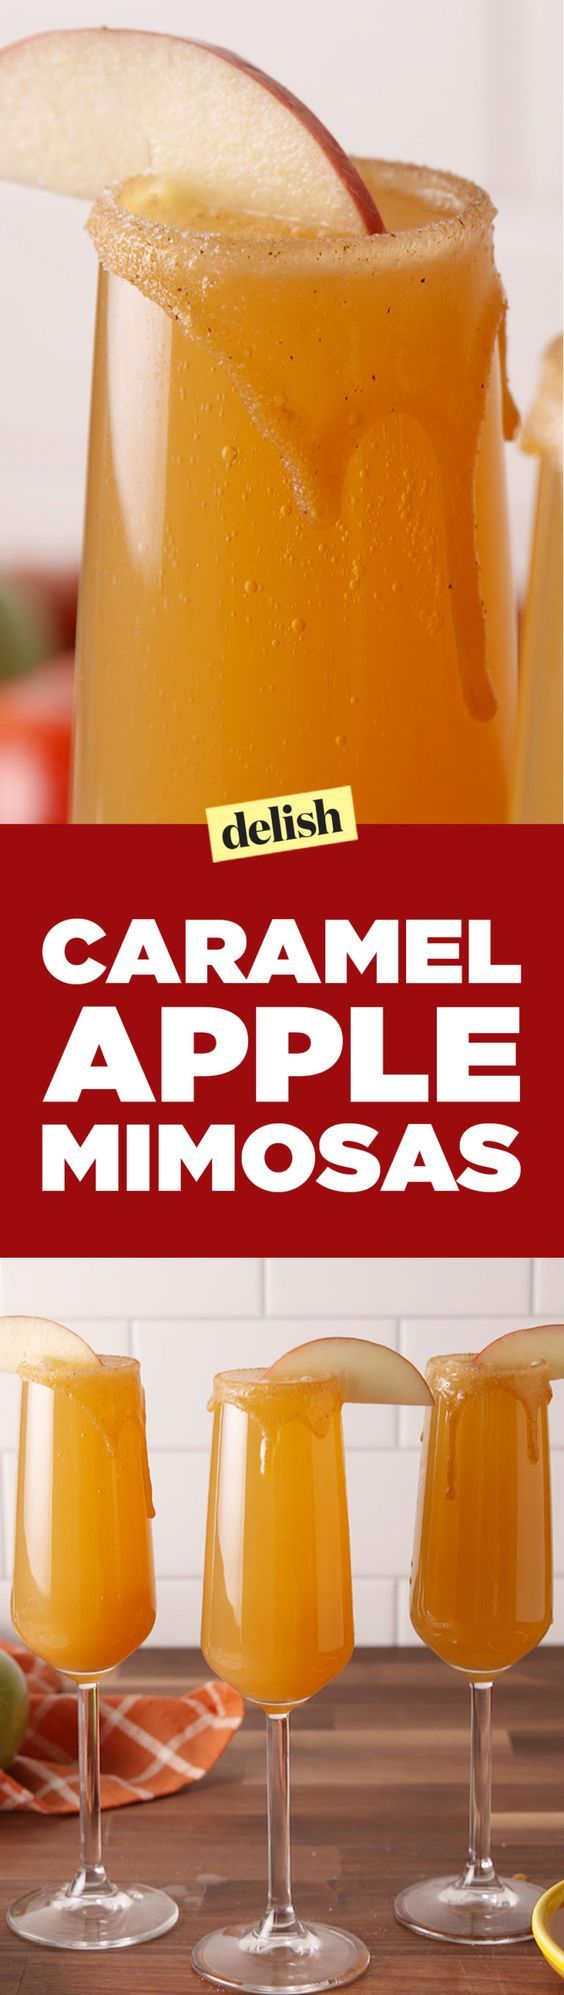 Caramel Apple Mimosas Are the New Apple Cider Mimosas